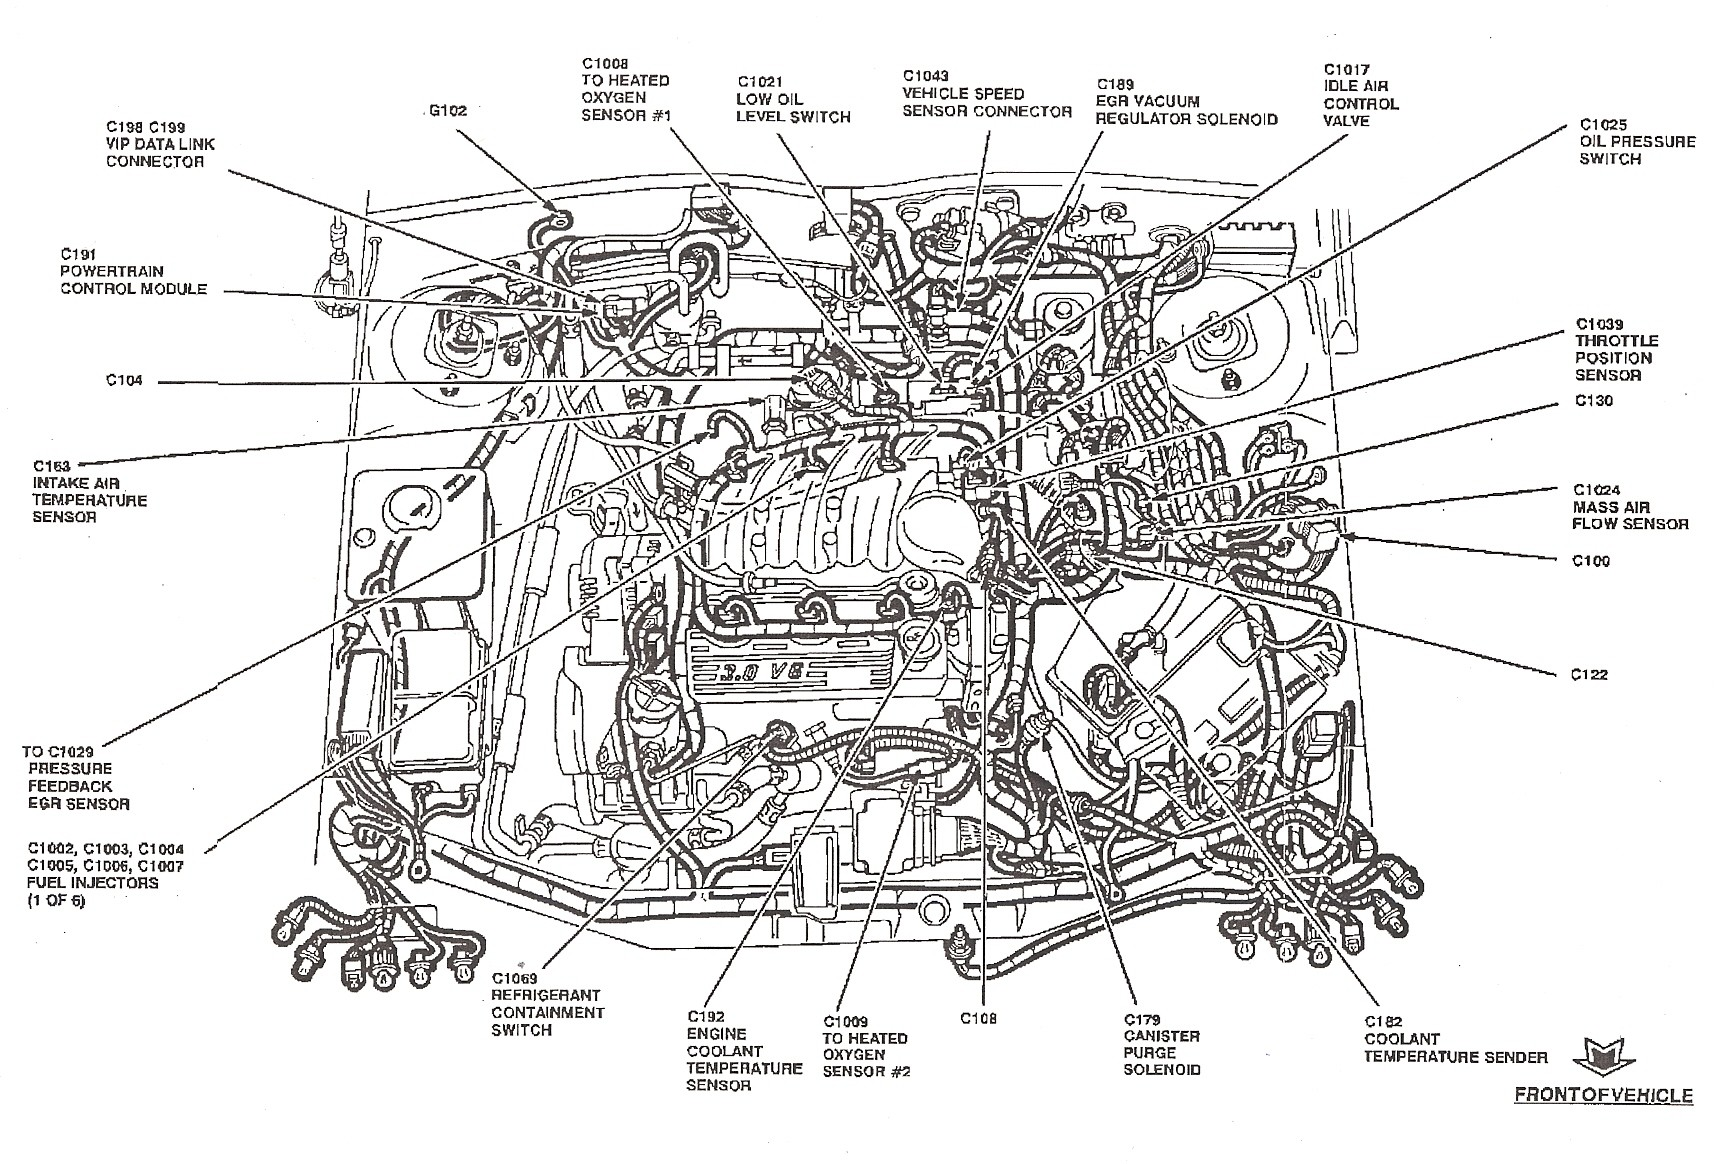 hight resolution of 2003 ford engine diagram wiring diagram yer 2003 ford f250 engine diagram 2003 ford engine diagram